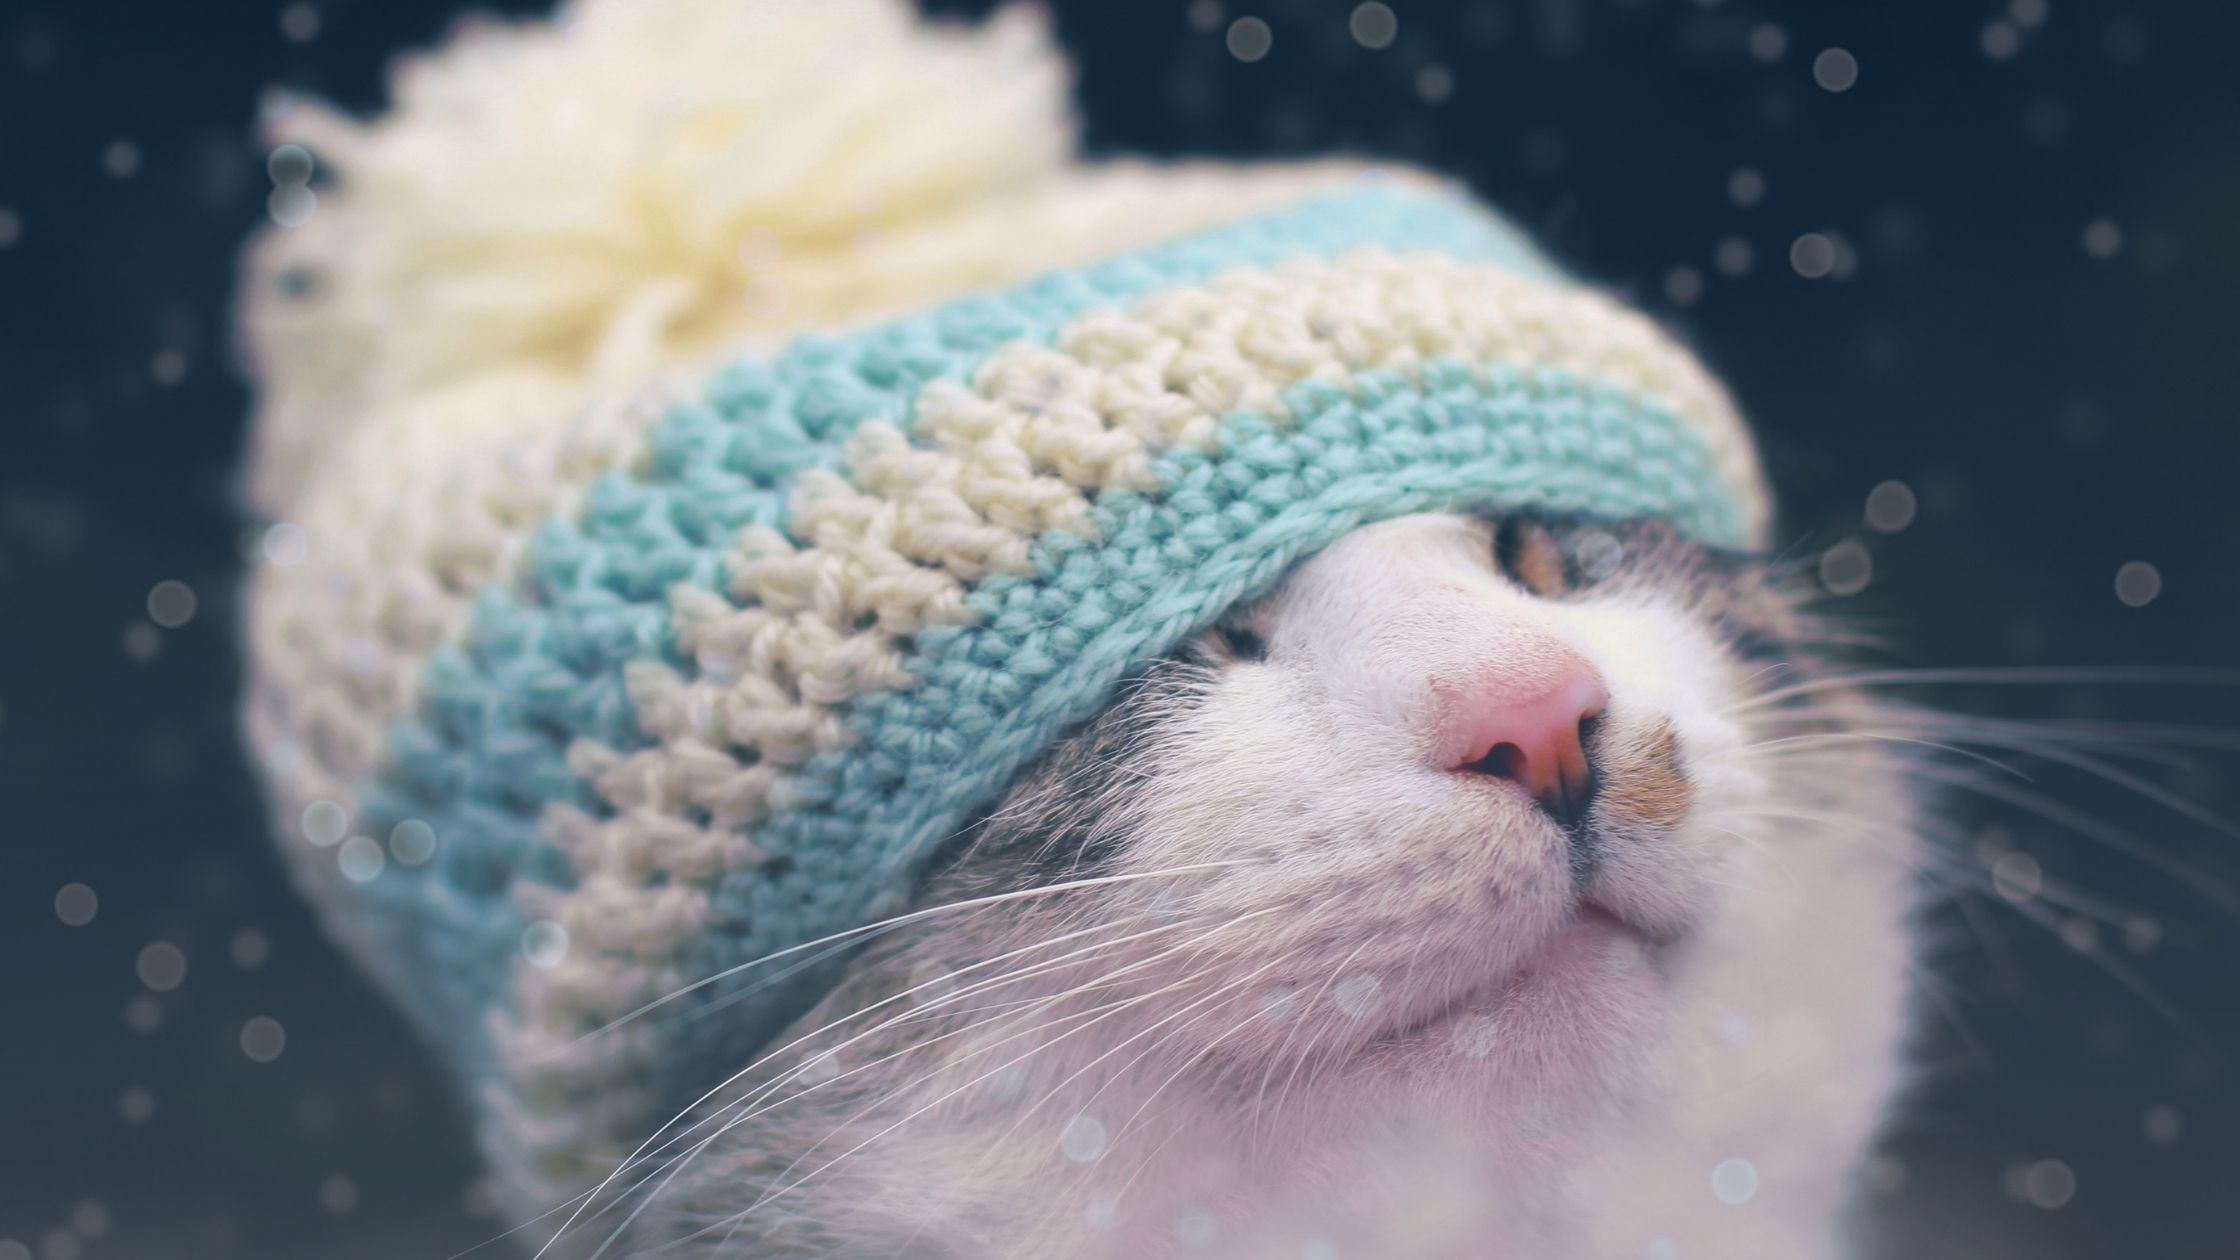 hats for cats: